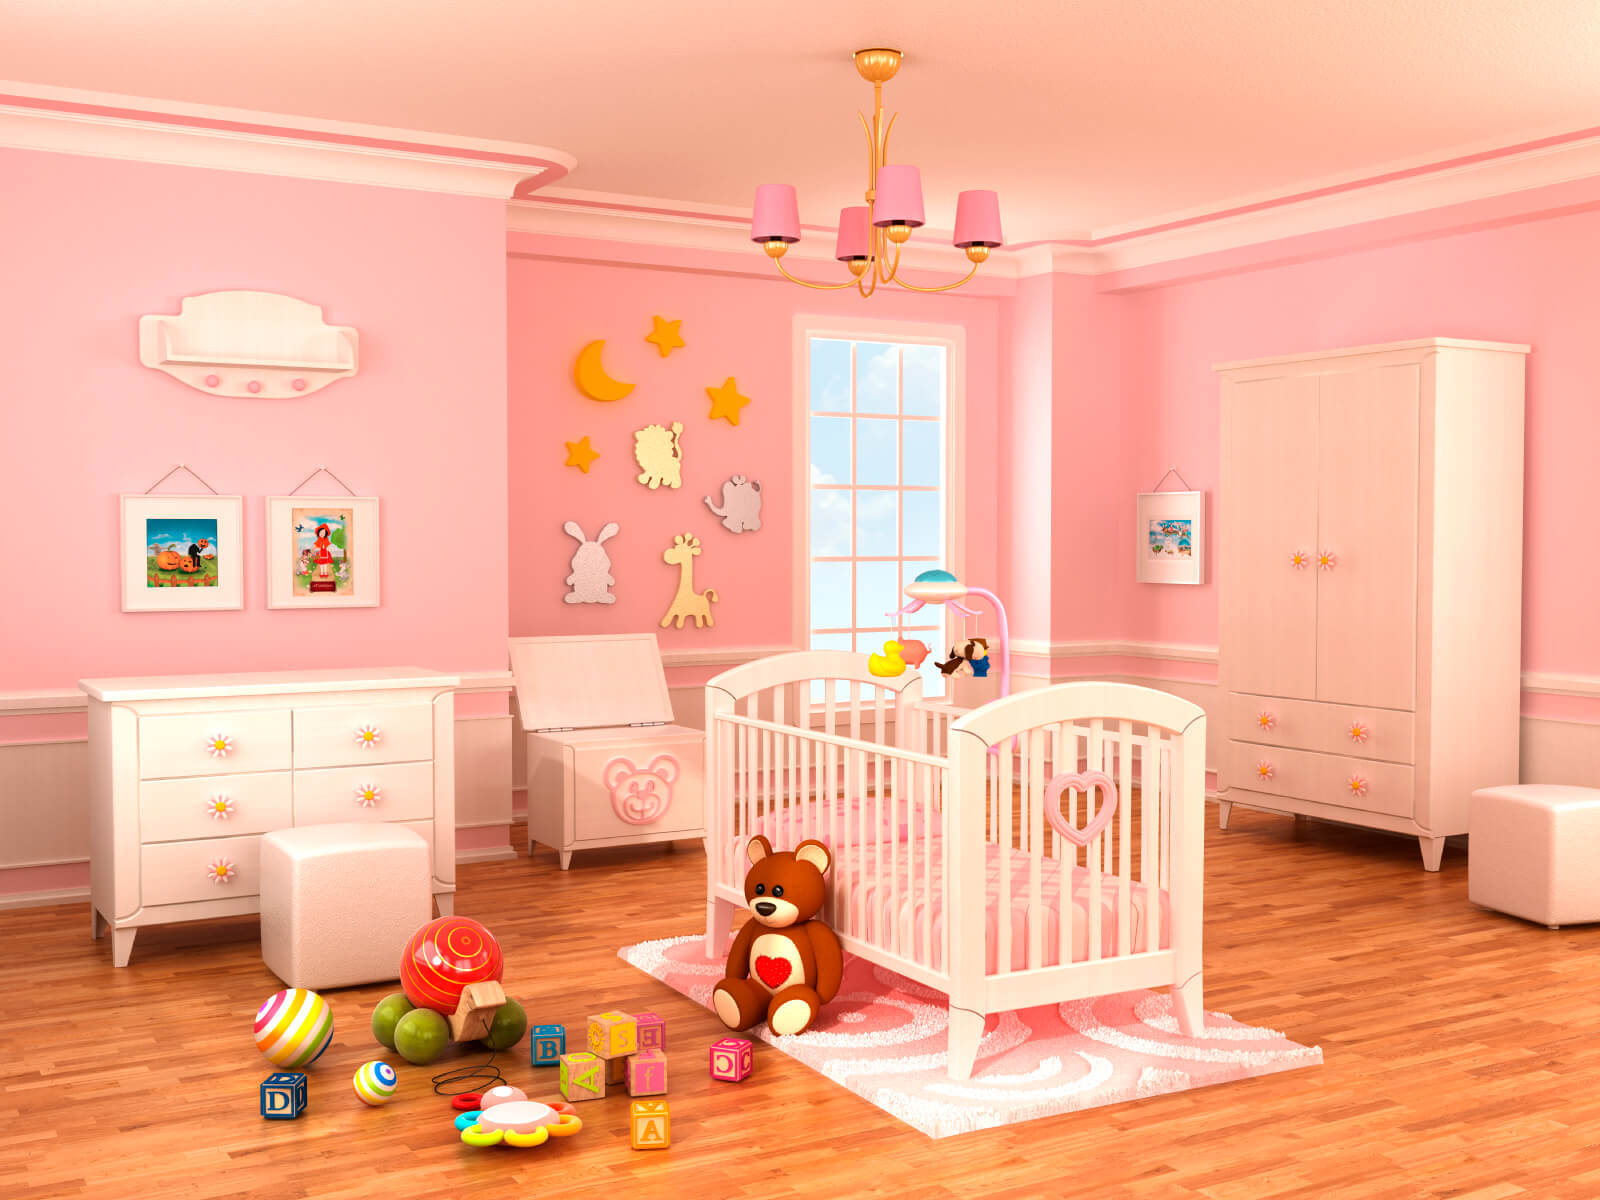 18 baby girl nursery ideas themes designs pictures for Carpet design software free download full version